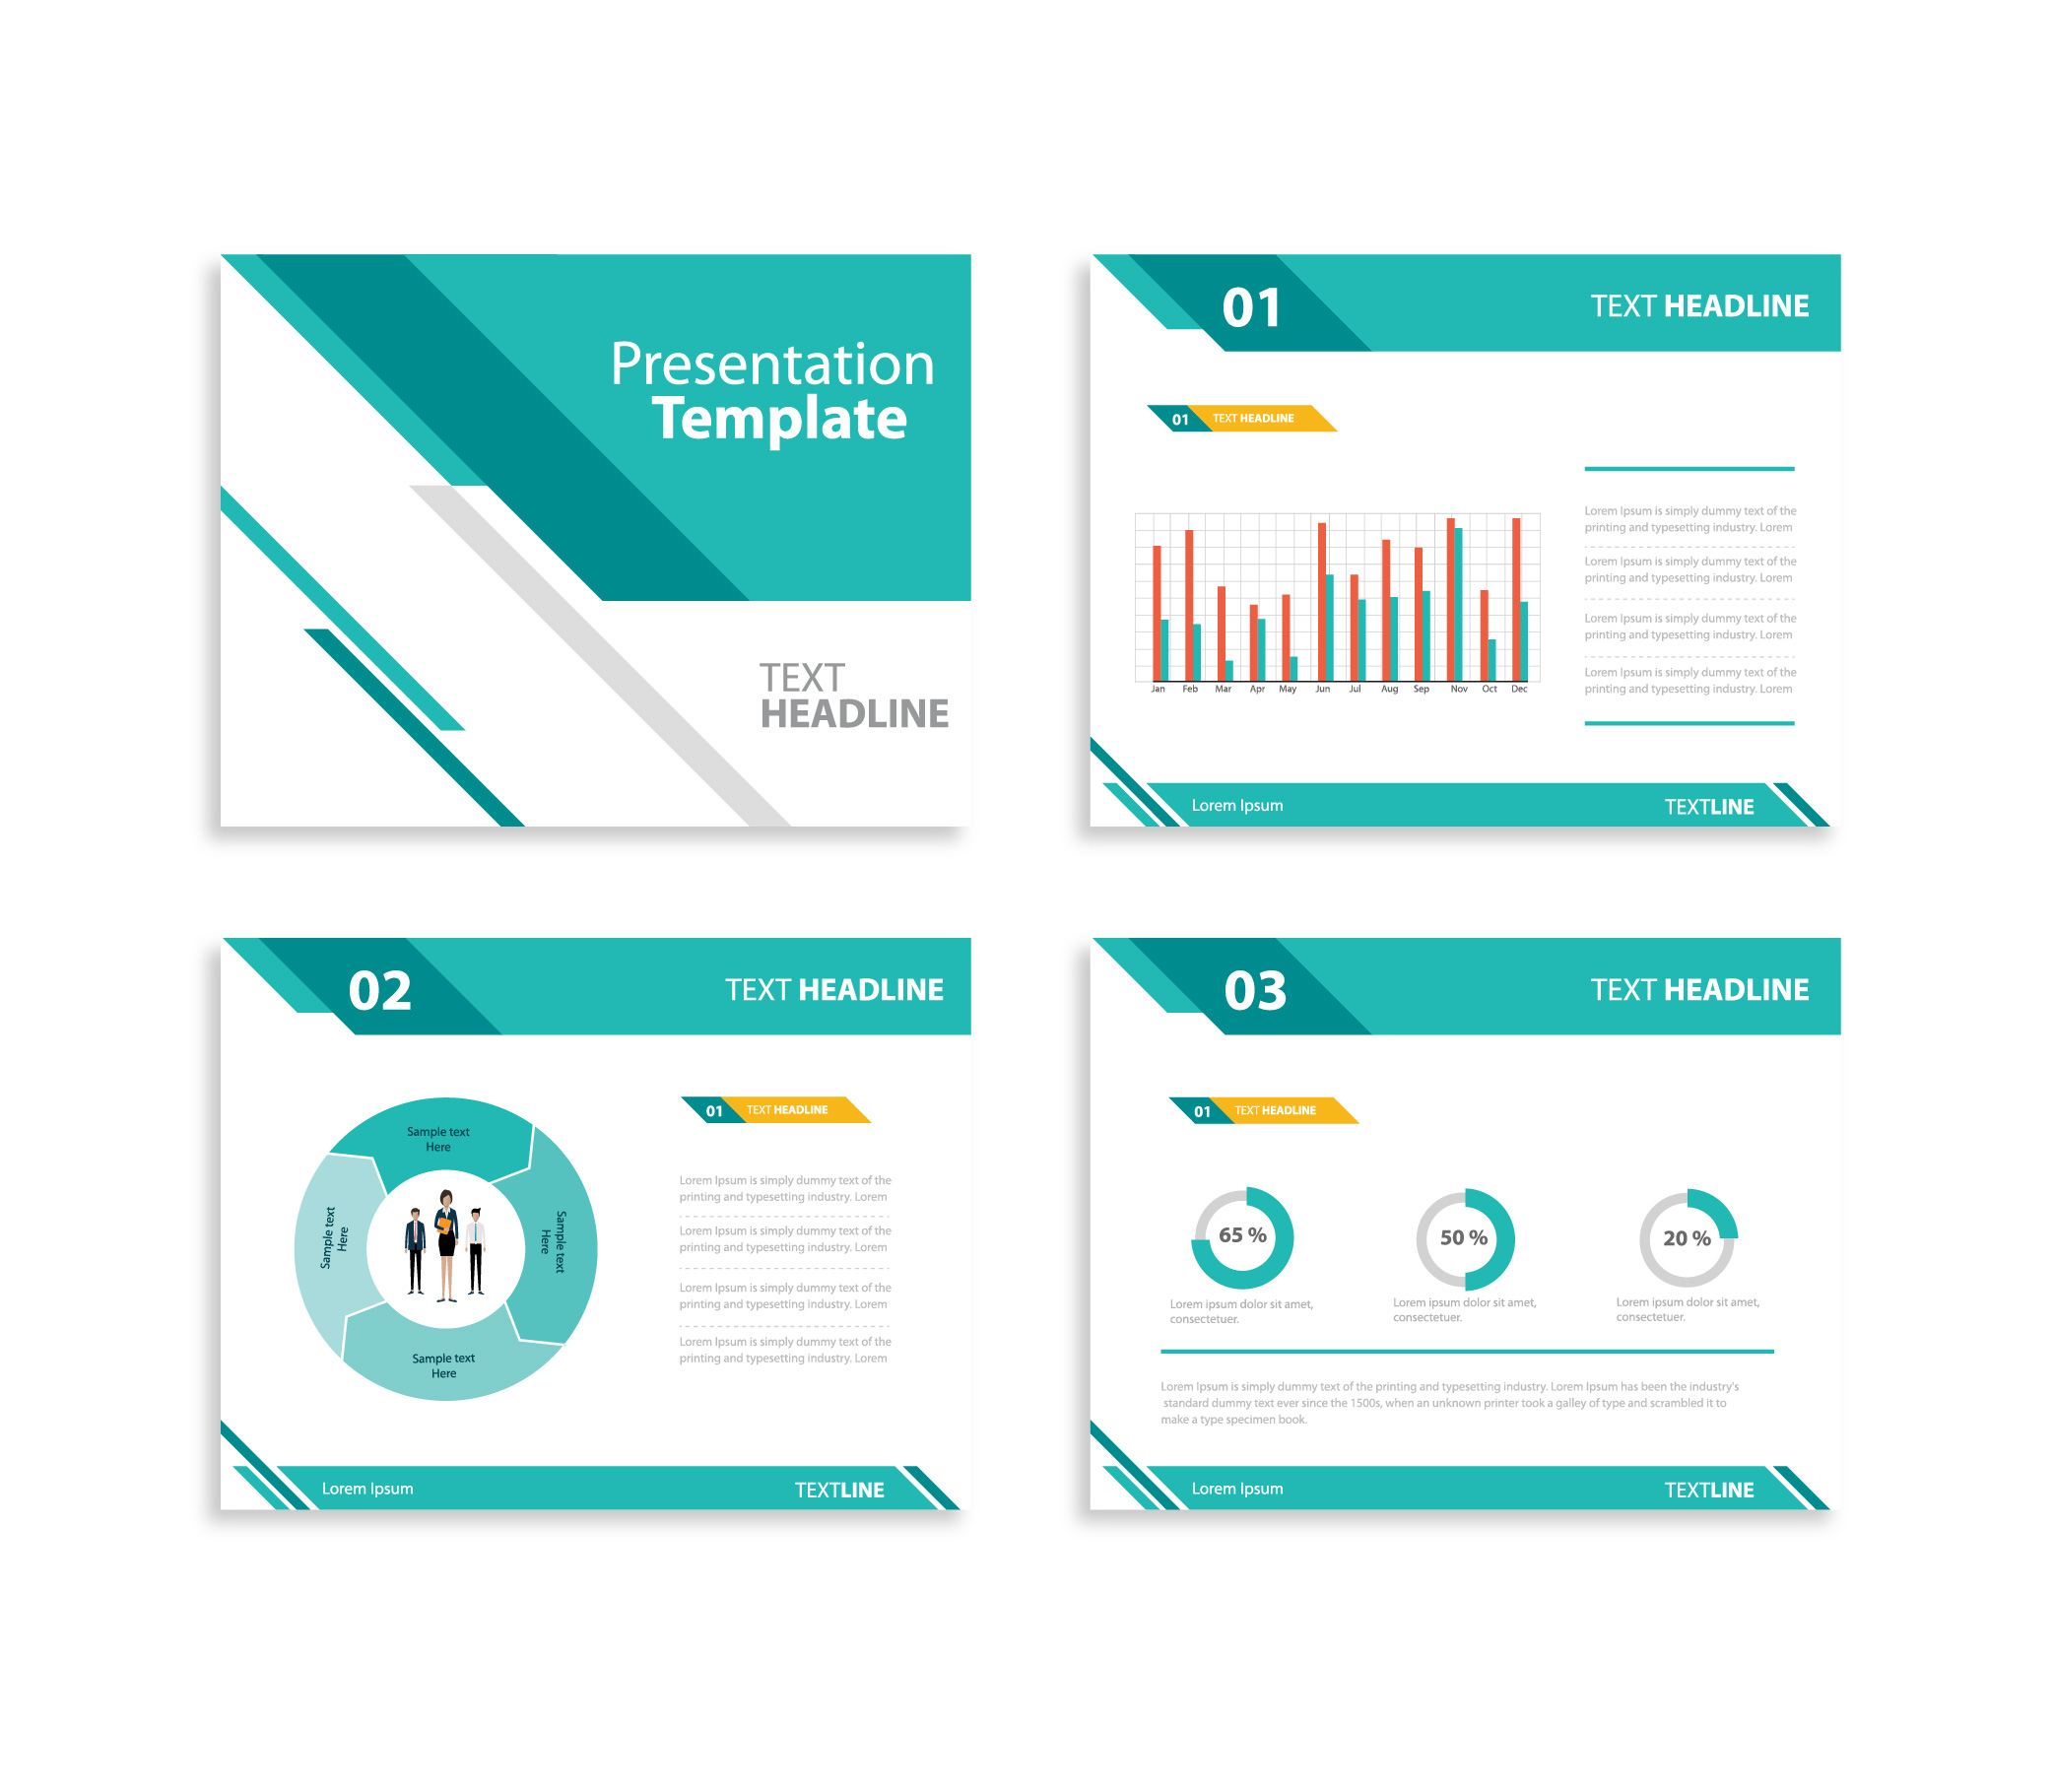 Presentation Template Design | ConceptDrop